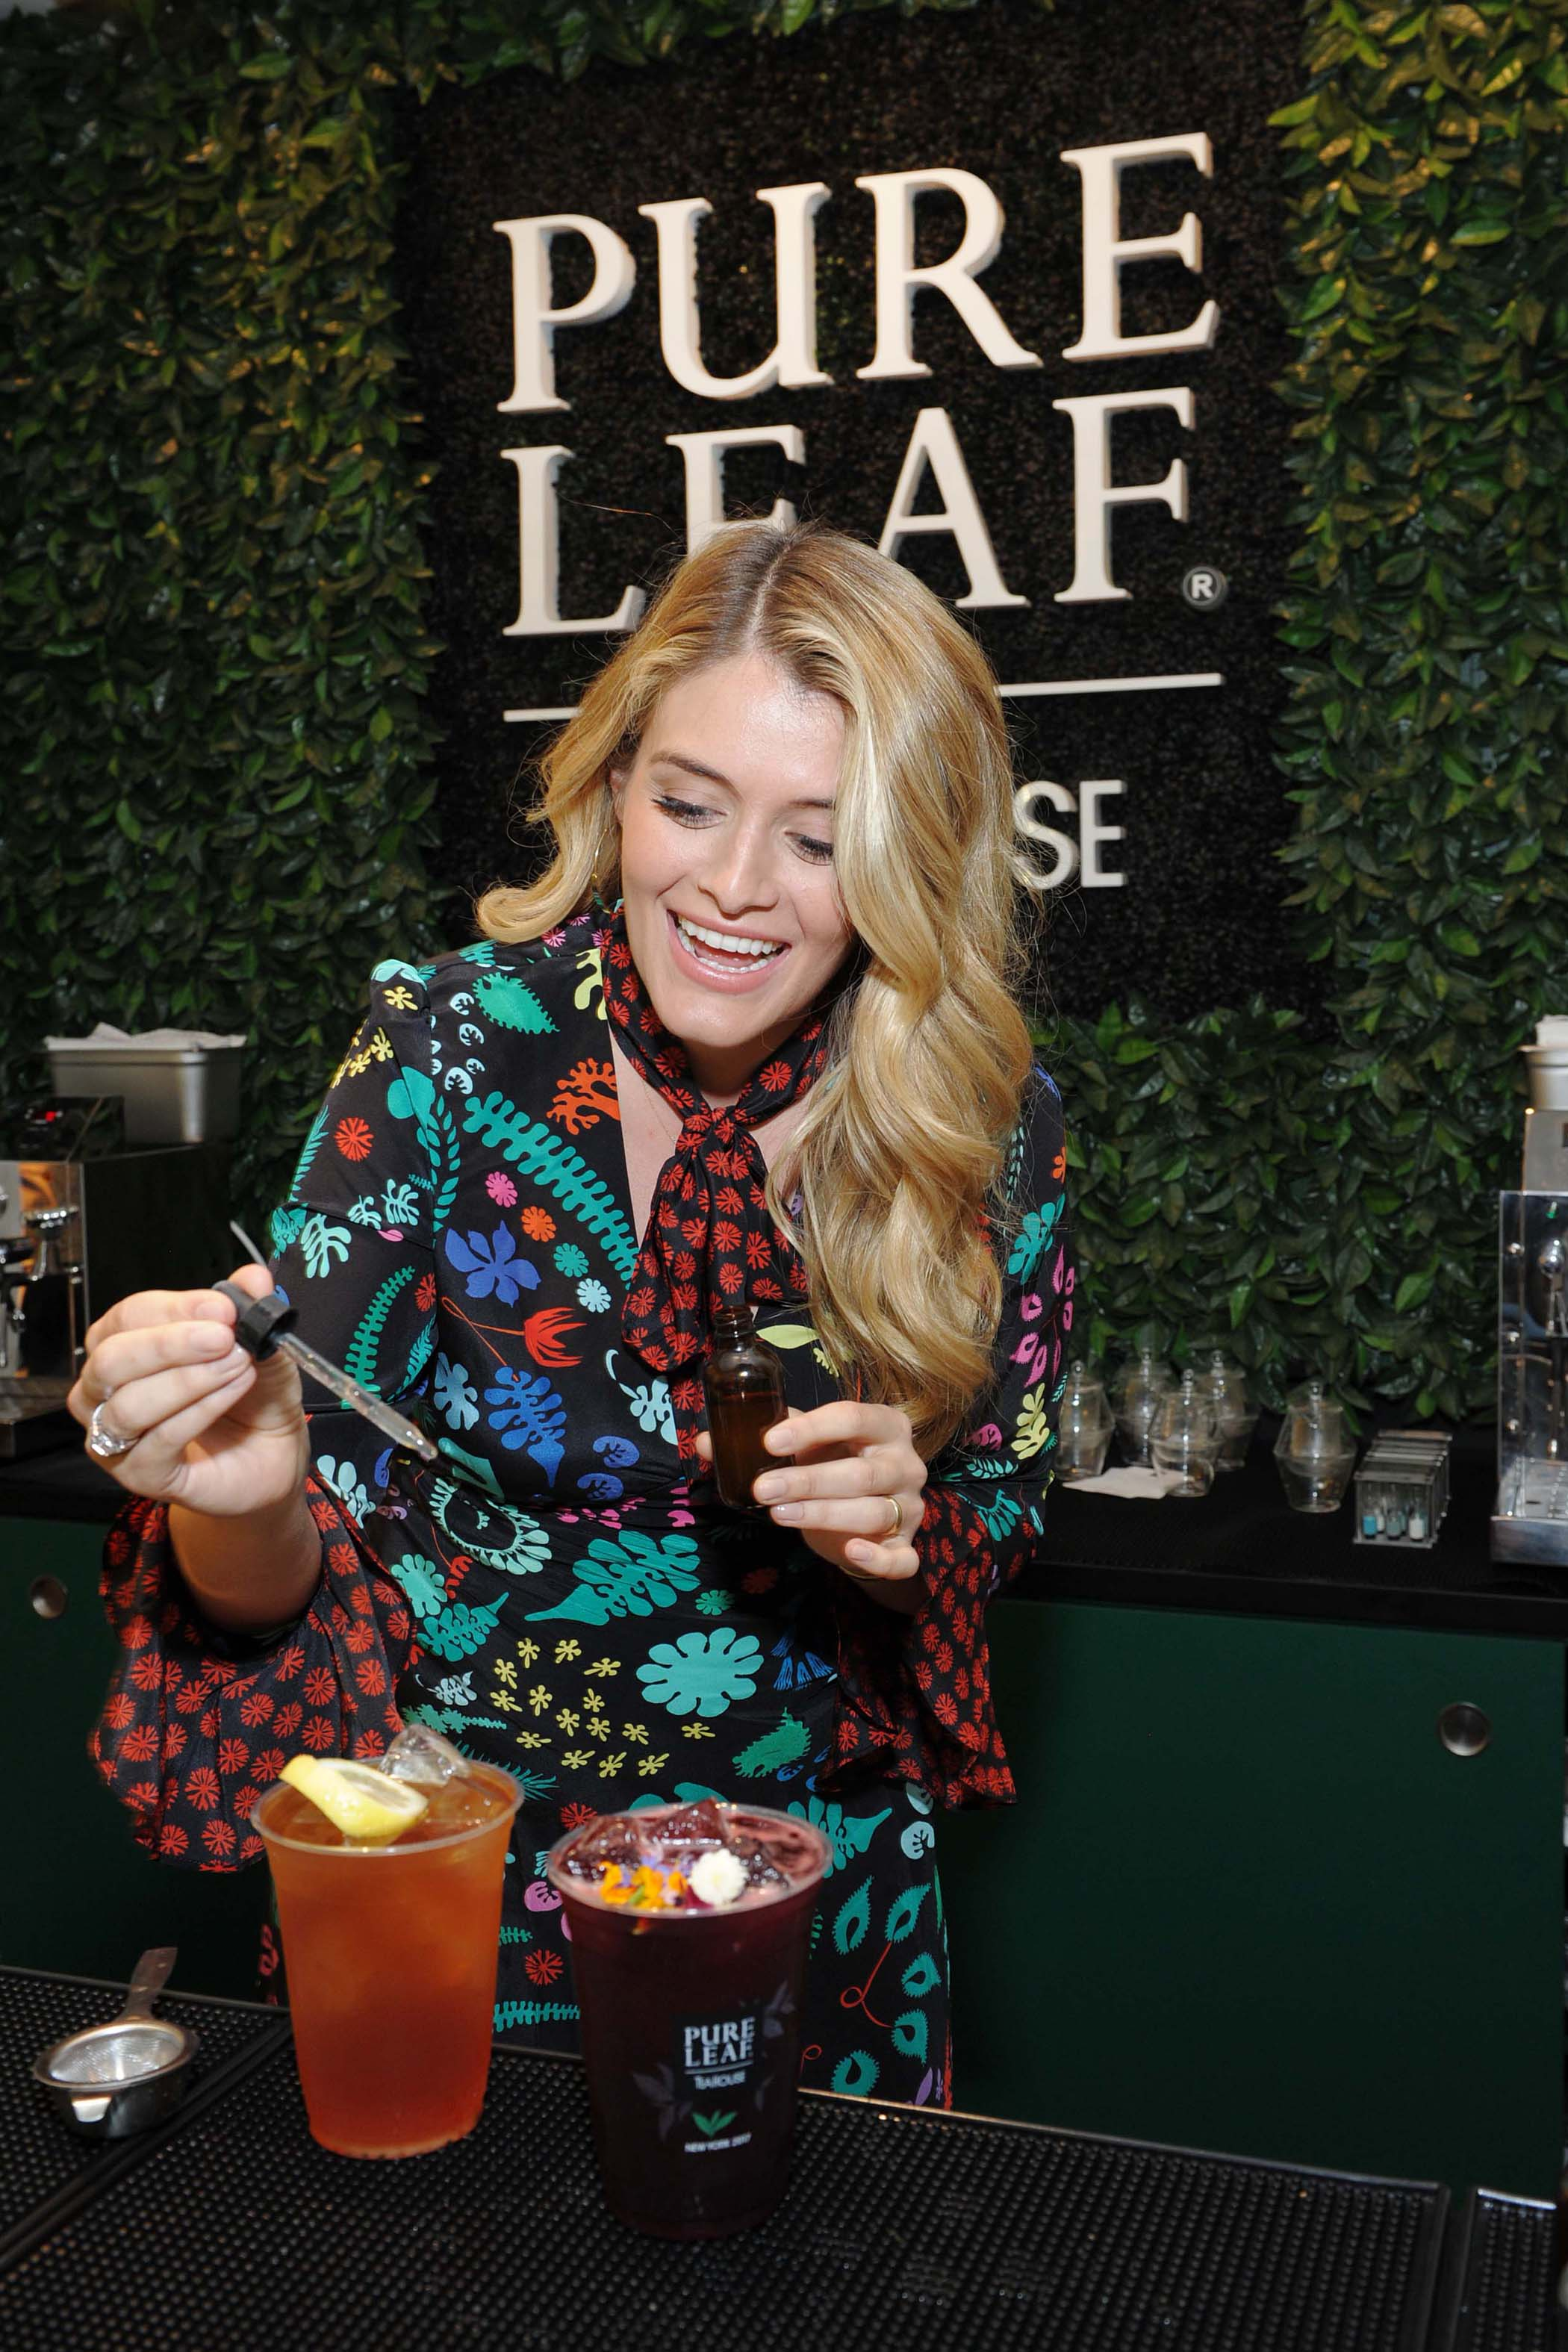 - New York, NY - 06/27/2017 - Daphne Oz celebrates the opening of the Pure Leaf Tea House in Soho NYC.  -PICTURED: Daphne Oz -PHOTO by: Michael Simon/startraksphoto.com -MS389007 Editorial - Rights Managed Image - Please contact www.startraksphoto.com for licensing fee Startraks Photo Startraks Photo New York, NY  For licensing please call 212-414-9464 or email sales@startraksphoto.com Image may not be published in any way that is or might be deemed defamatory, libelous, pornographic, or obscene. Please consult our sales department for any clarification or question you may have Startraks Photo reserves the right to pursue unauthorized users of this image. If you violate our intellectual property you may be liable for actual damages, loss of income, and profits you derive from the use of this image, and where appropriate, the cost of collection and/or statutory damages.